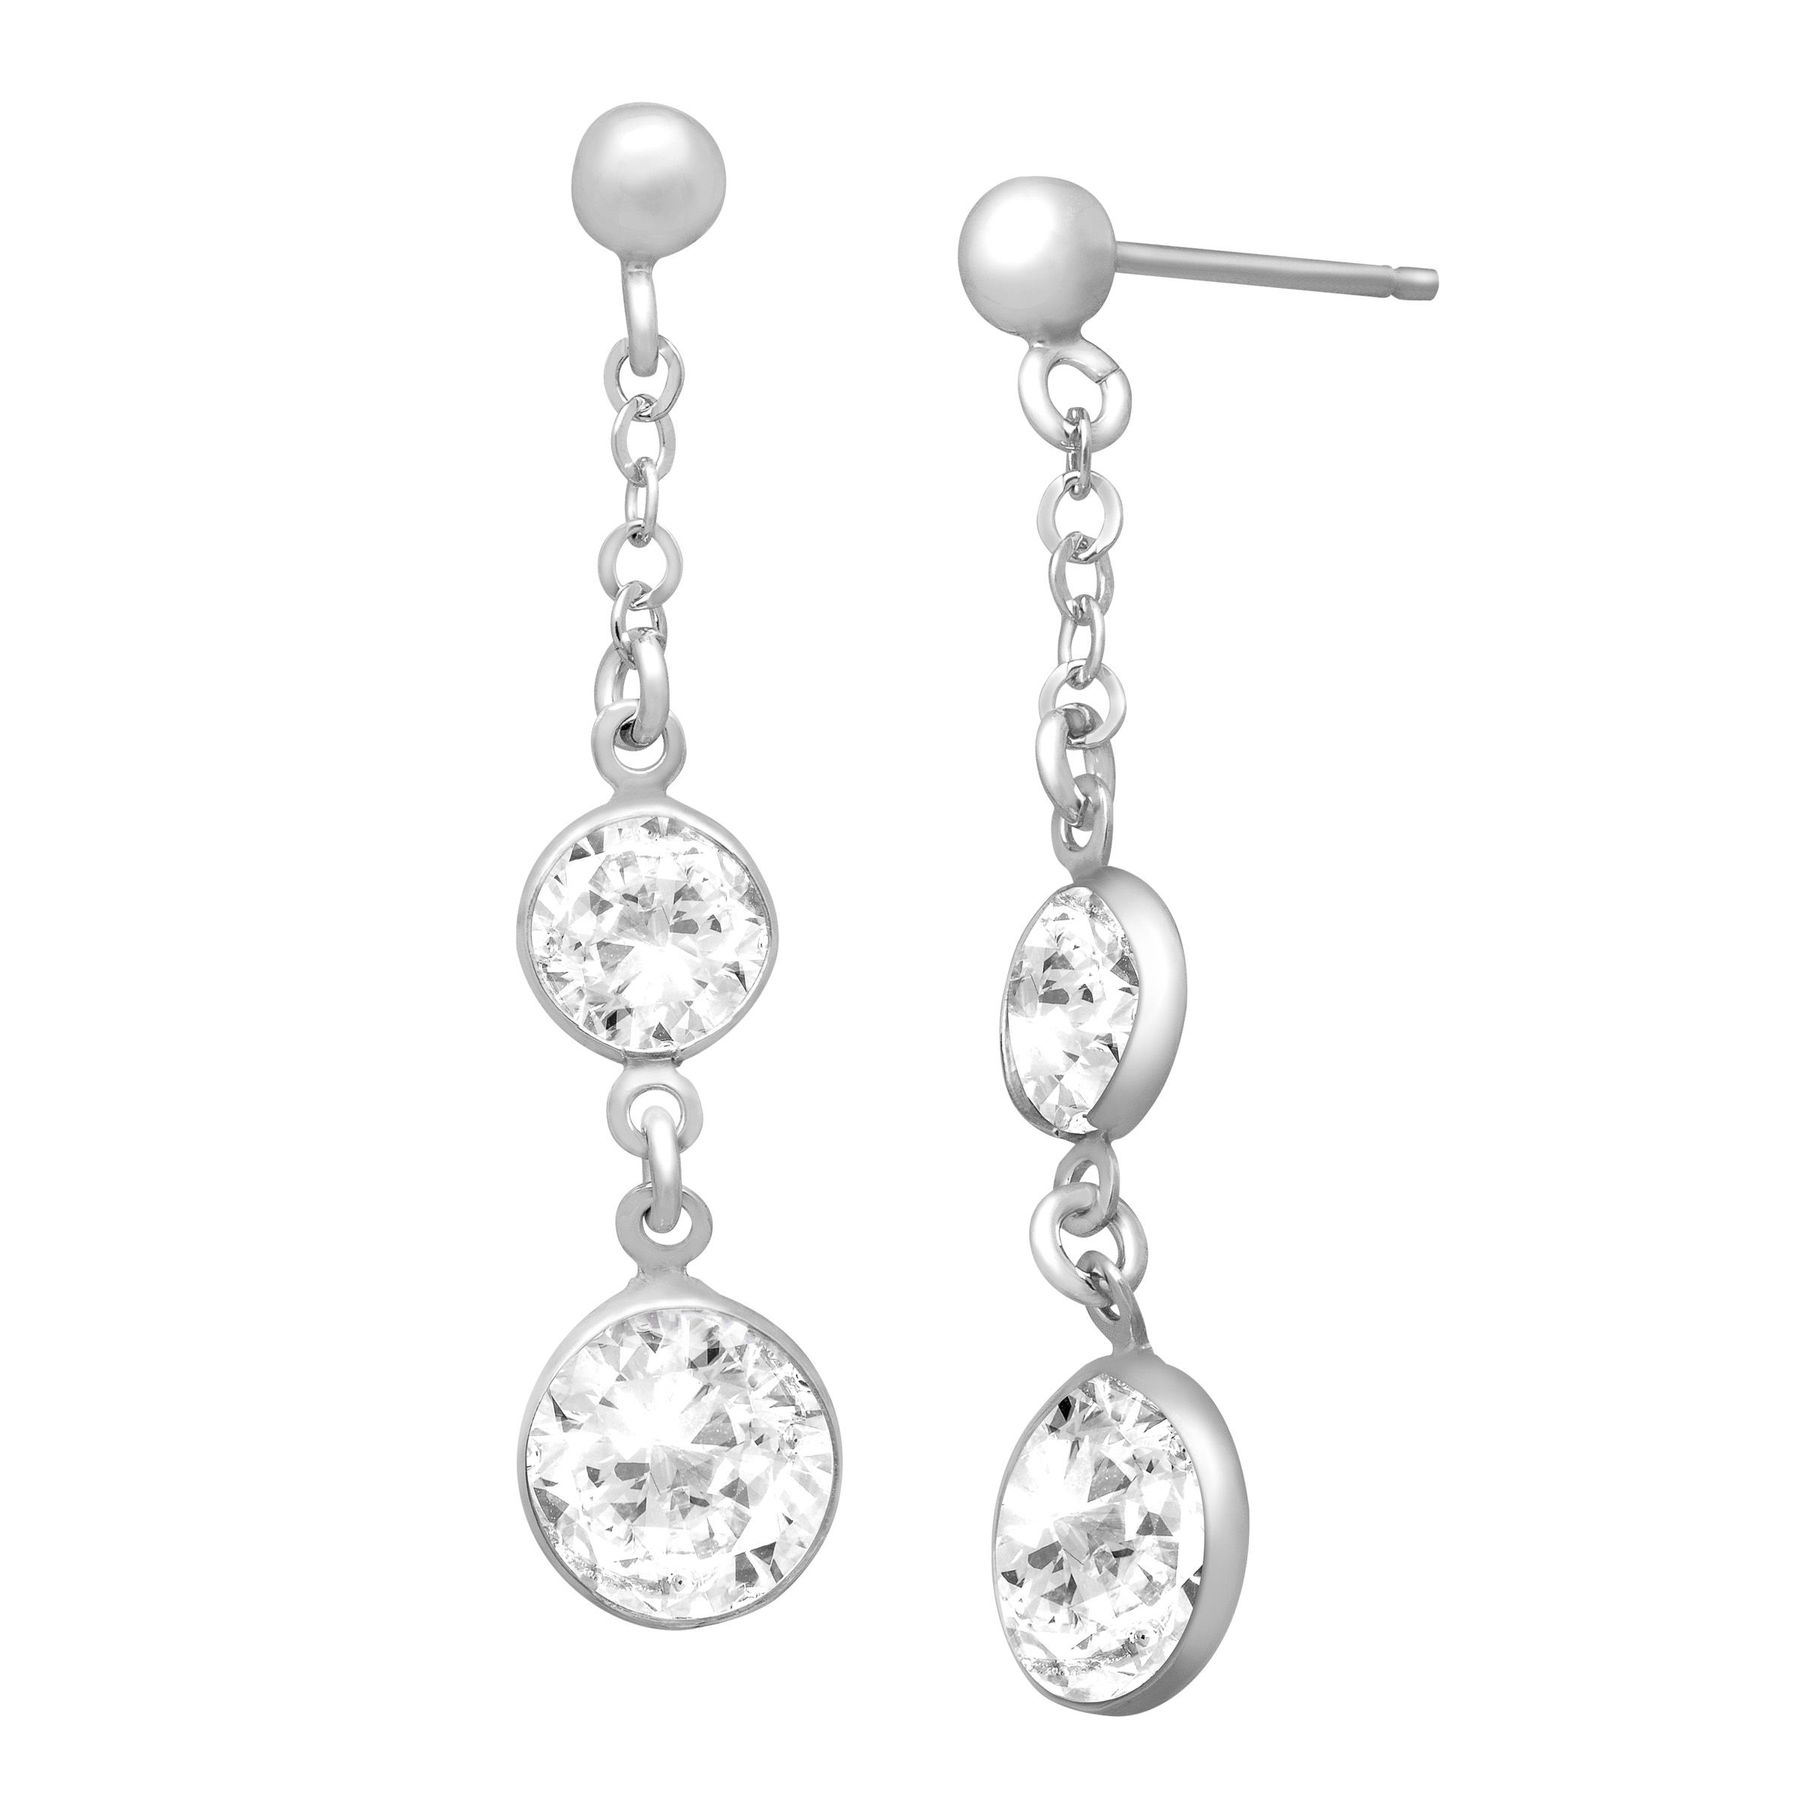 Drop Earrings With Swarovski Crystals In Sterling Silver